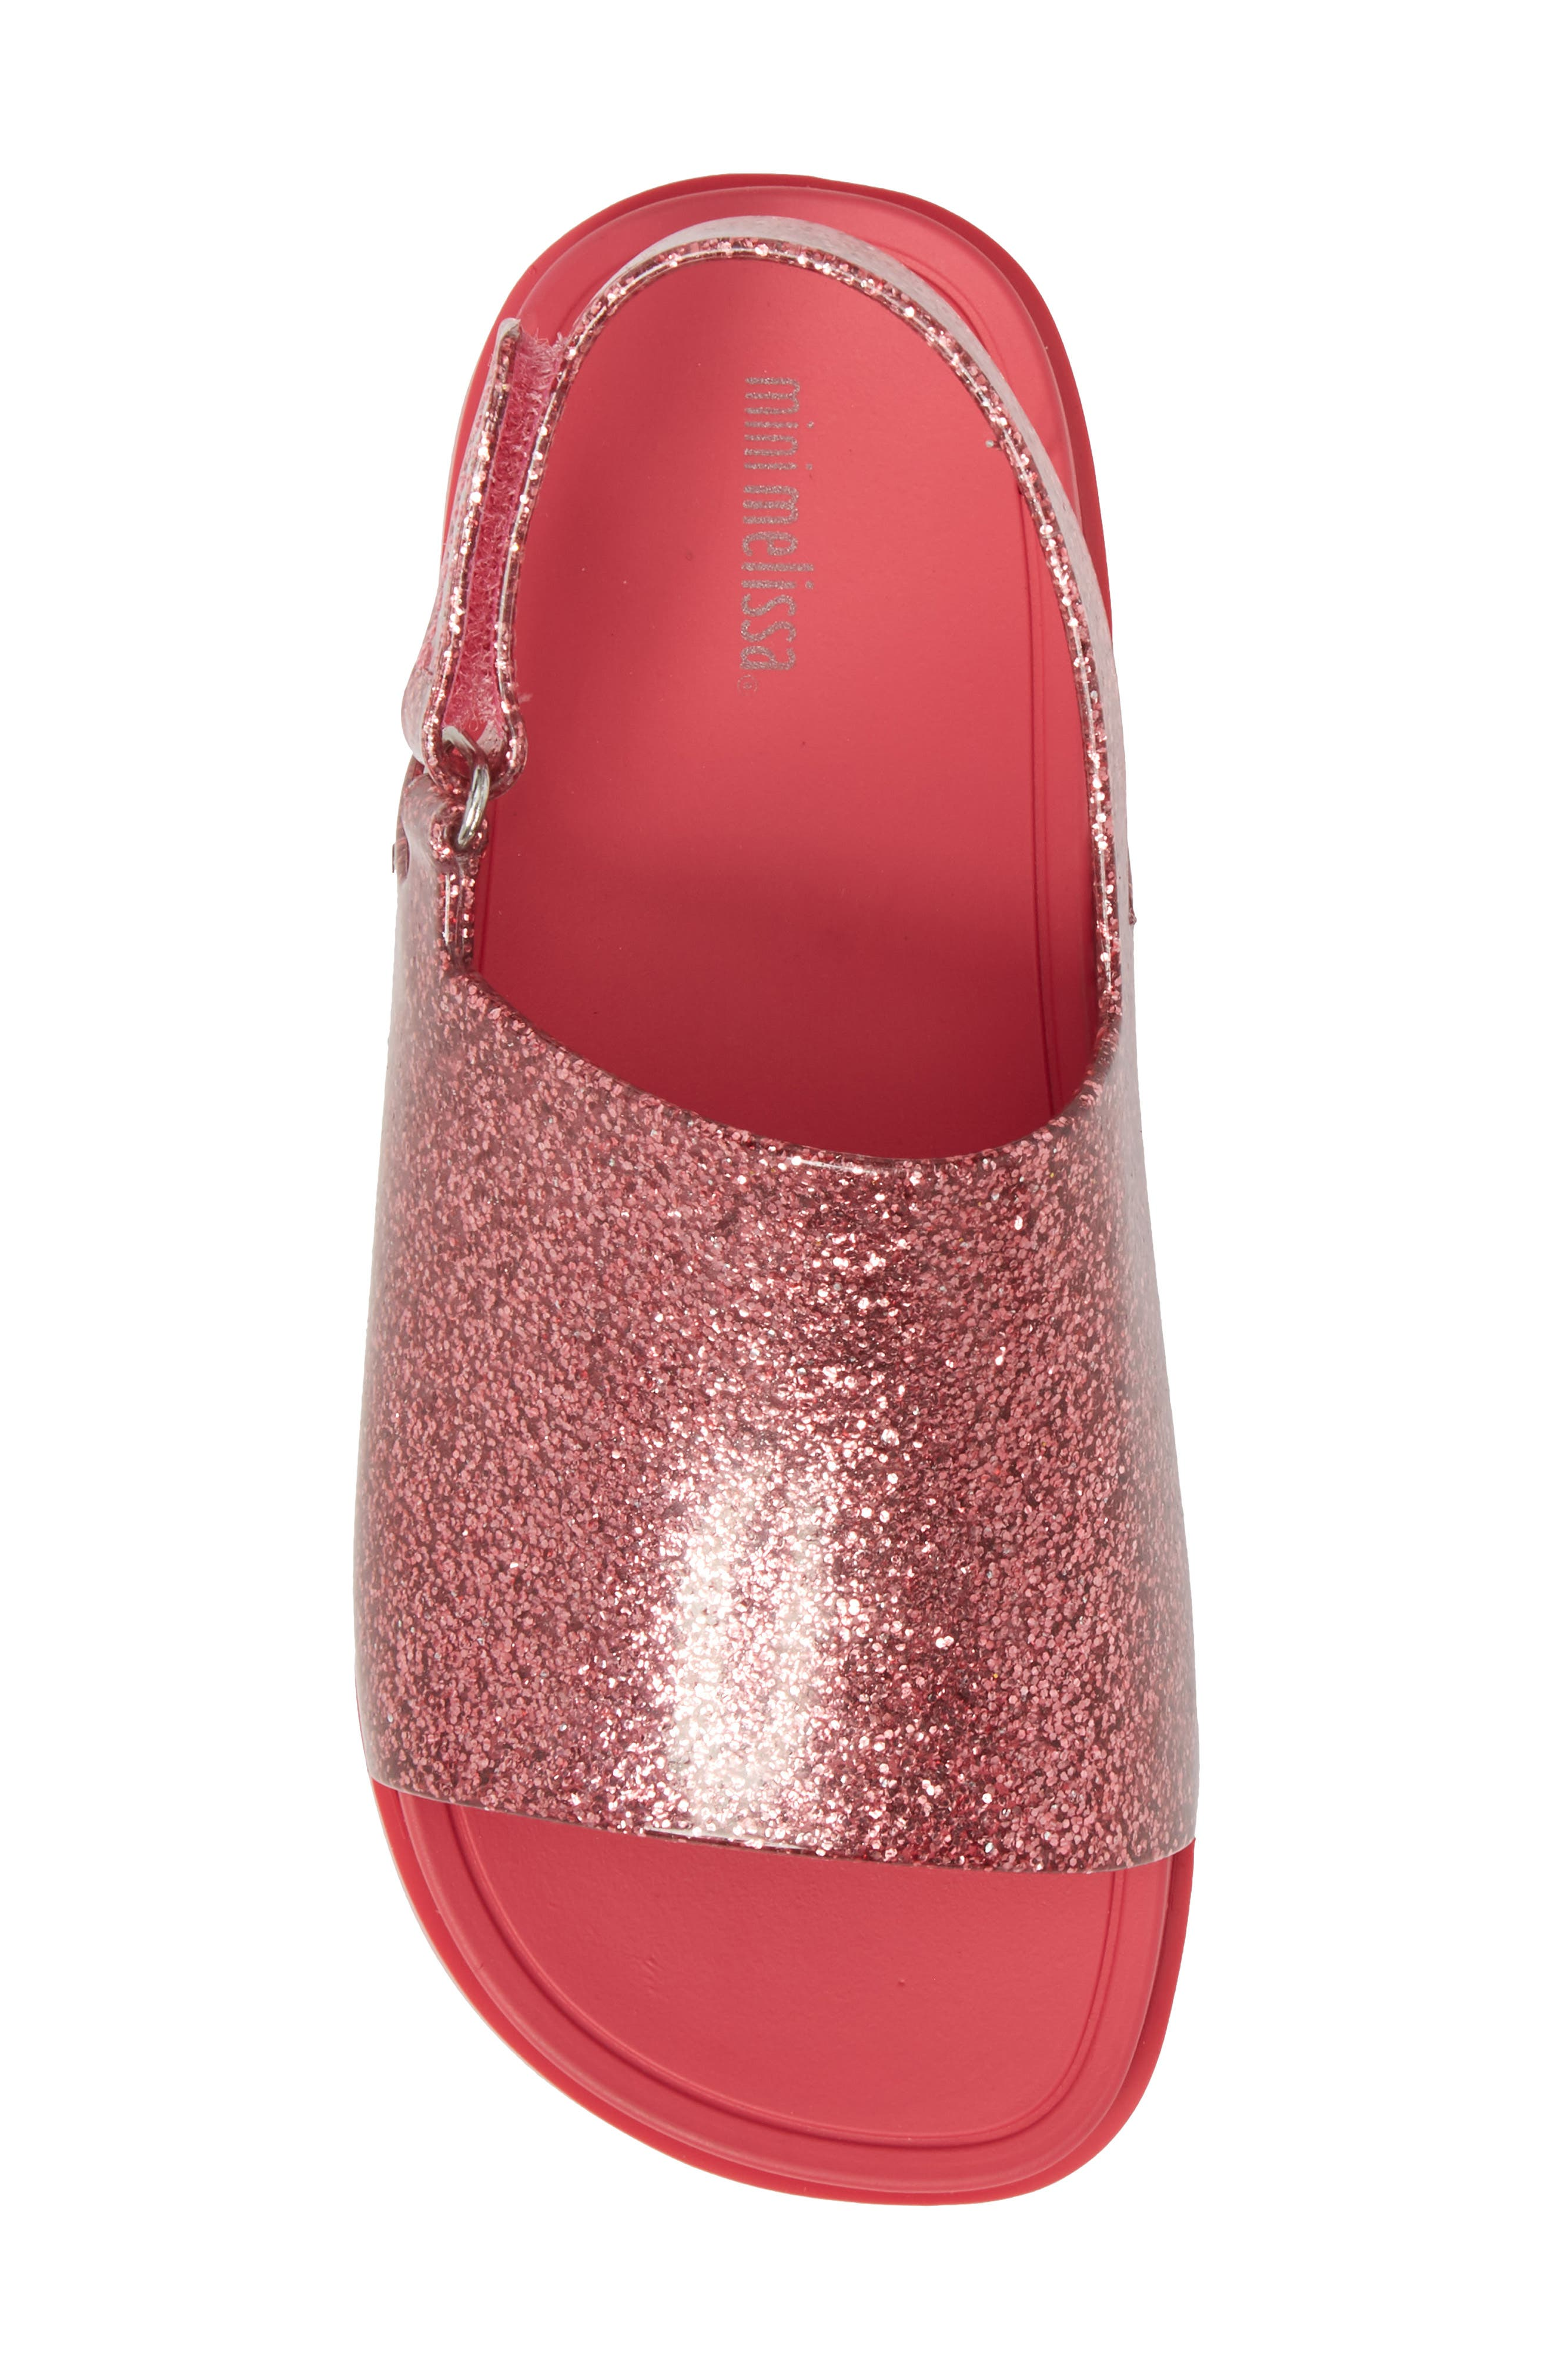 Mini Beach Sandal,                             Alternate thumbnail 5, color,                             Pink Glitter